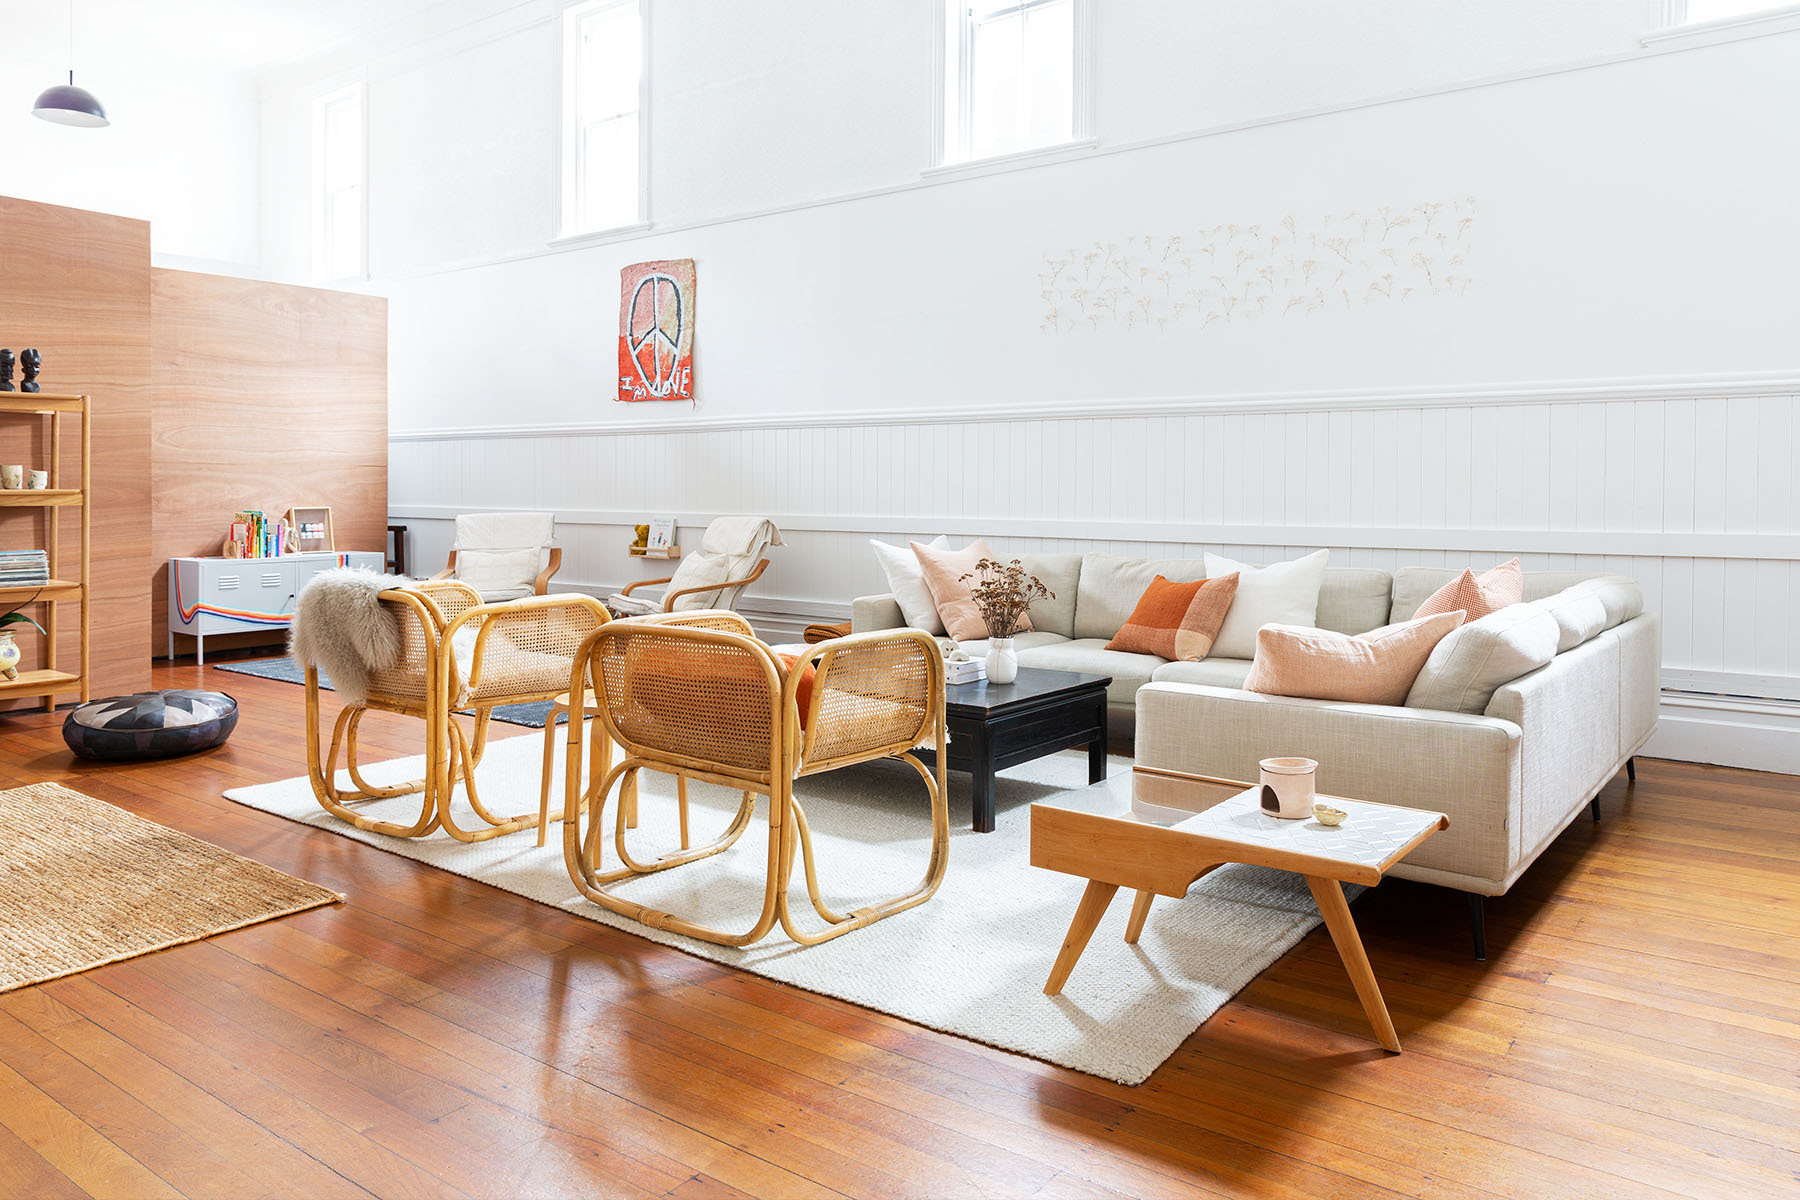 Jessica Britten and fiancé Warren Durling took an old fraternity hall and created a layered family home.BoConcept Sofa |Flooring Xtra Rug |Nodi Jute |McMullin & Co. Armchairs |Città Assorted Pillows | Vintage Turkish Pouf | Vintage Artwork |Bunnings New Zealand Pendant Lights |Flooring Xtra Sheepskin |Nodi Area Rug | Heirloom Armchairs | Heirloom Sculptures |Asili Accent Pieces | Trade Aid, Vintage Toys |Trade Aid Customized Baskets | Vintage Customized Filing Cabinet.